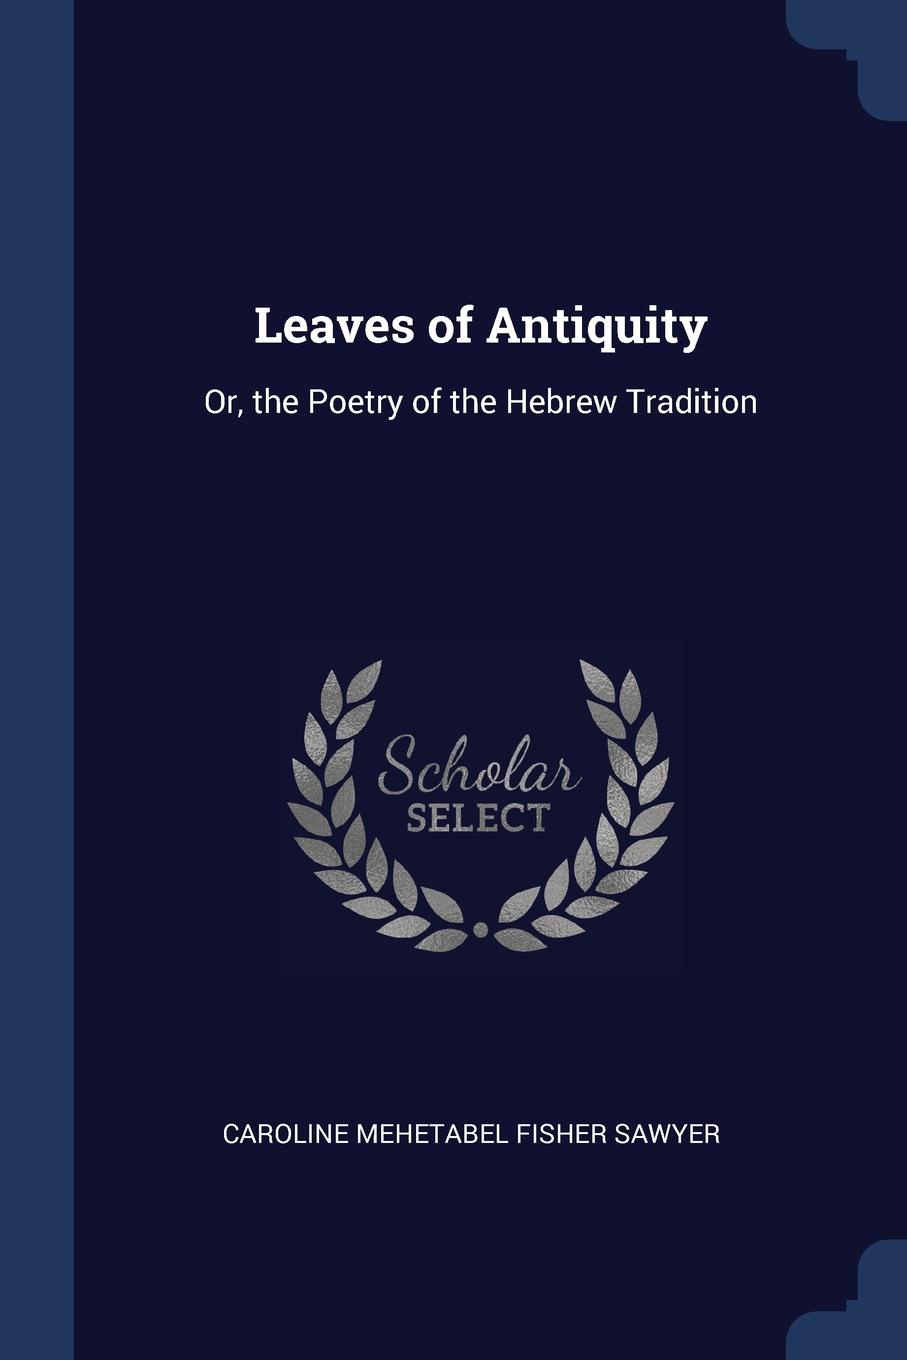 Leaves of Antiquity. Or, the Poetry of the Hebrew Tradition